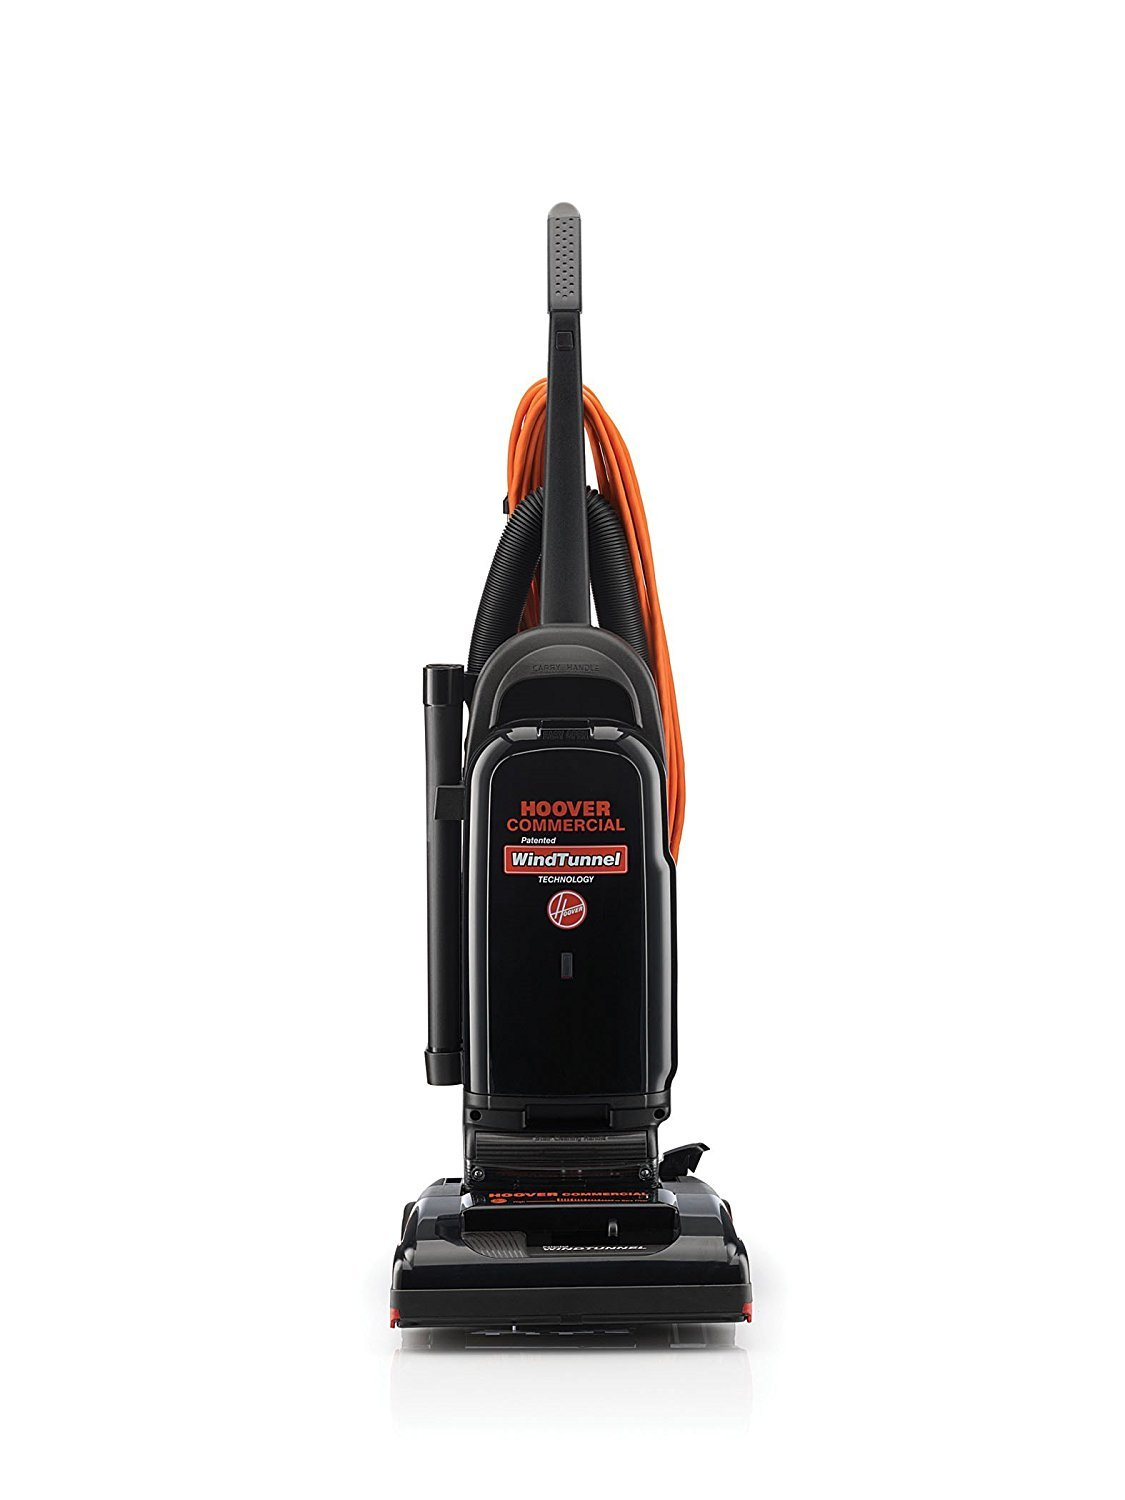 Hoover Commercial WindTunnel 13'' Bagged Upright Vacuum C1703900 (1 PACK)